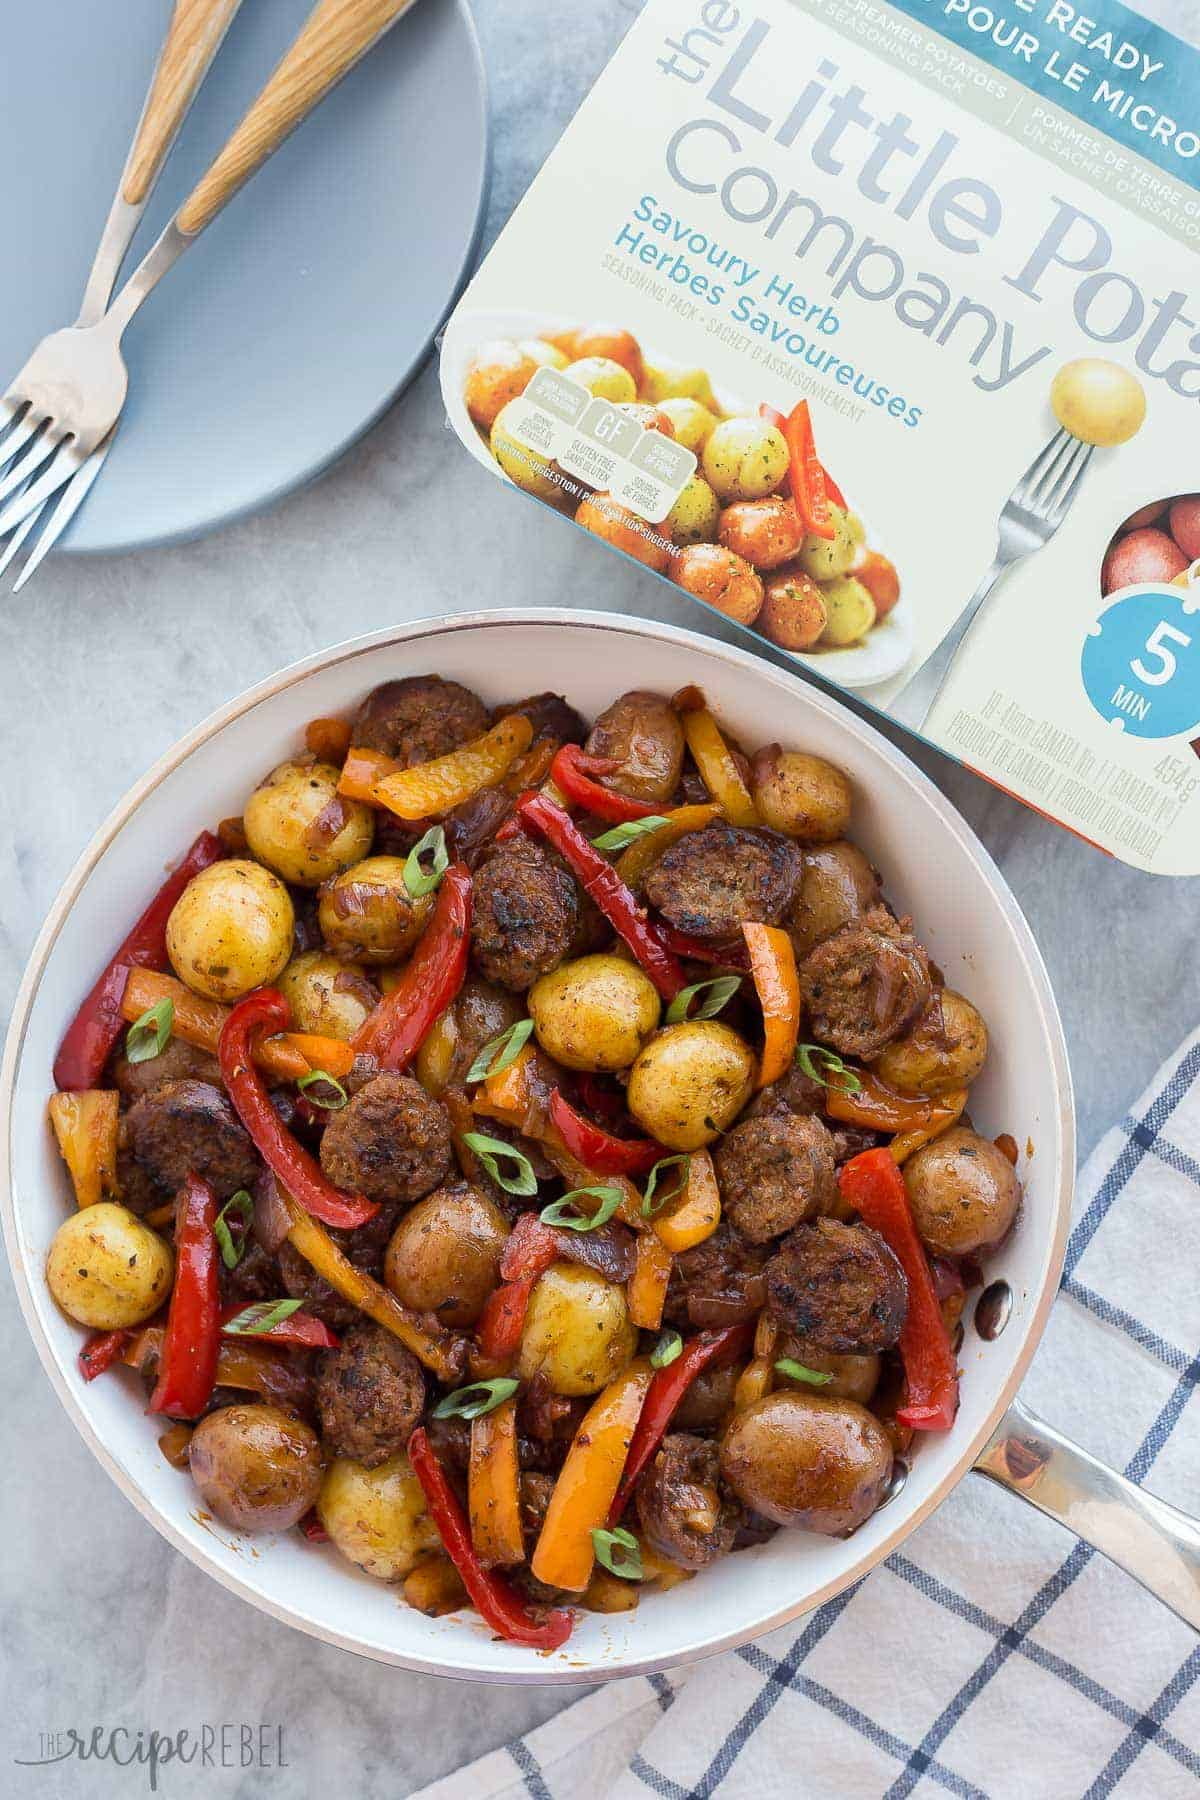 Easy One Skillet Meal 30 Minute Hearty Italian Sausage And